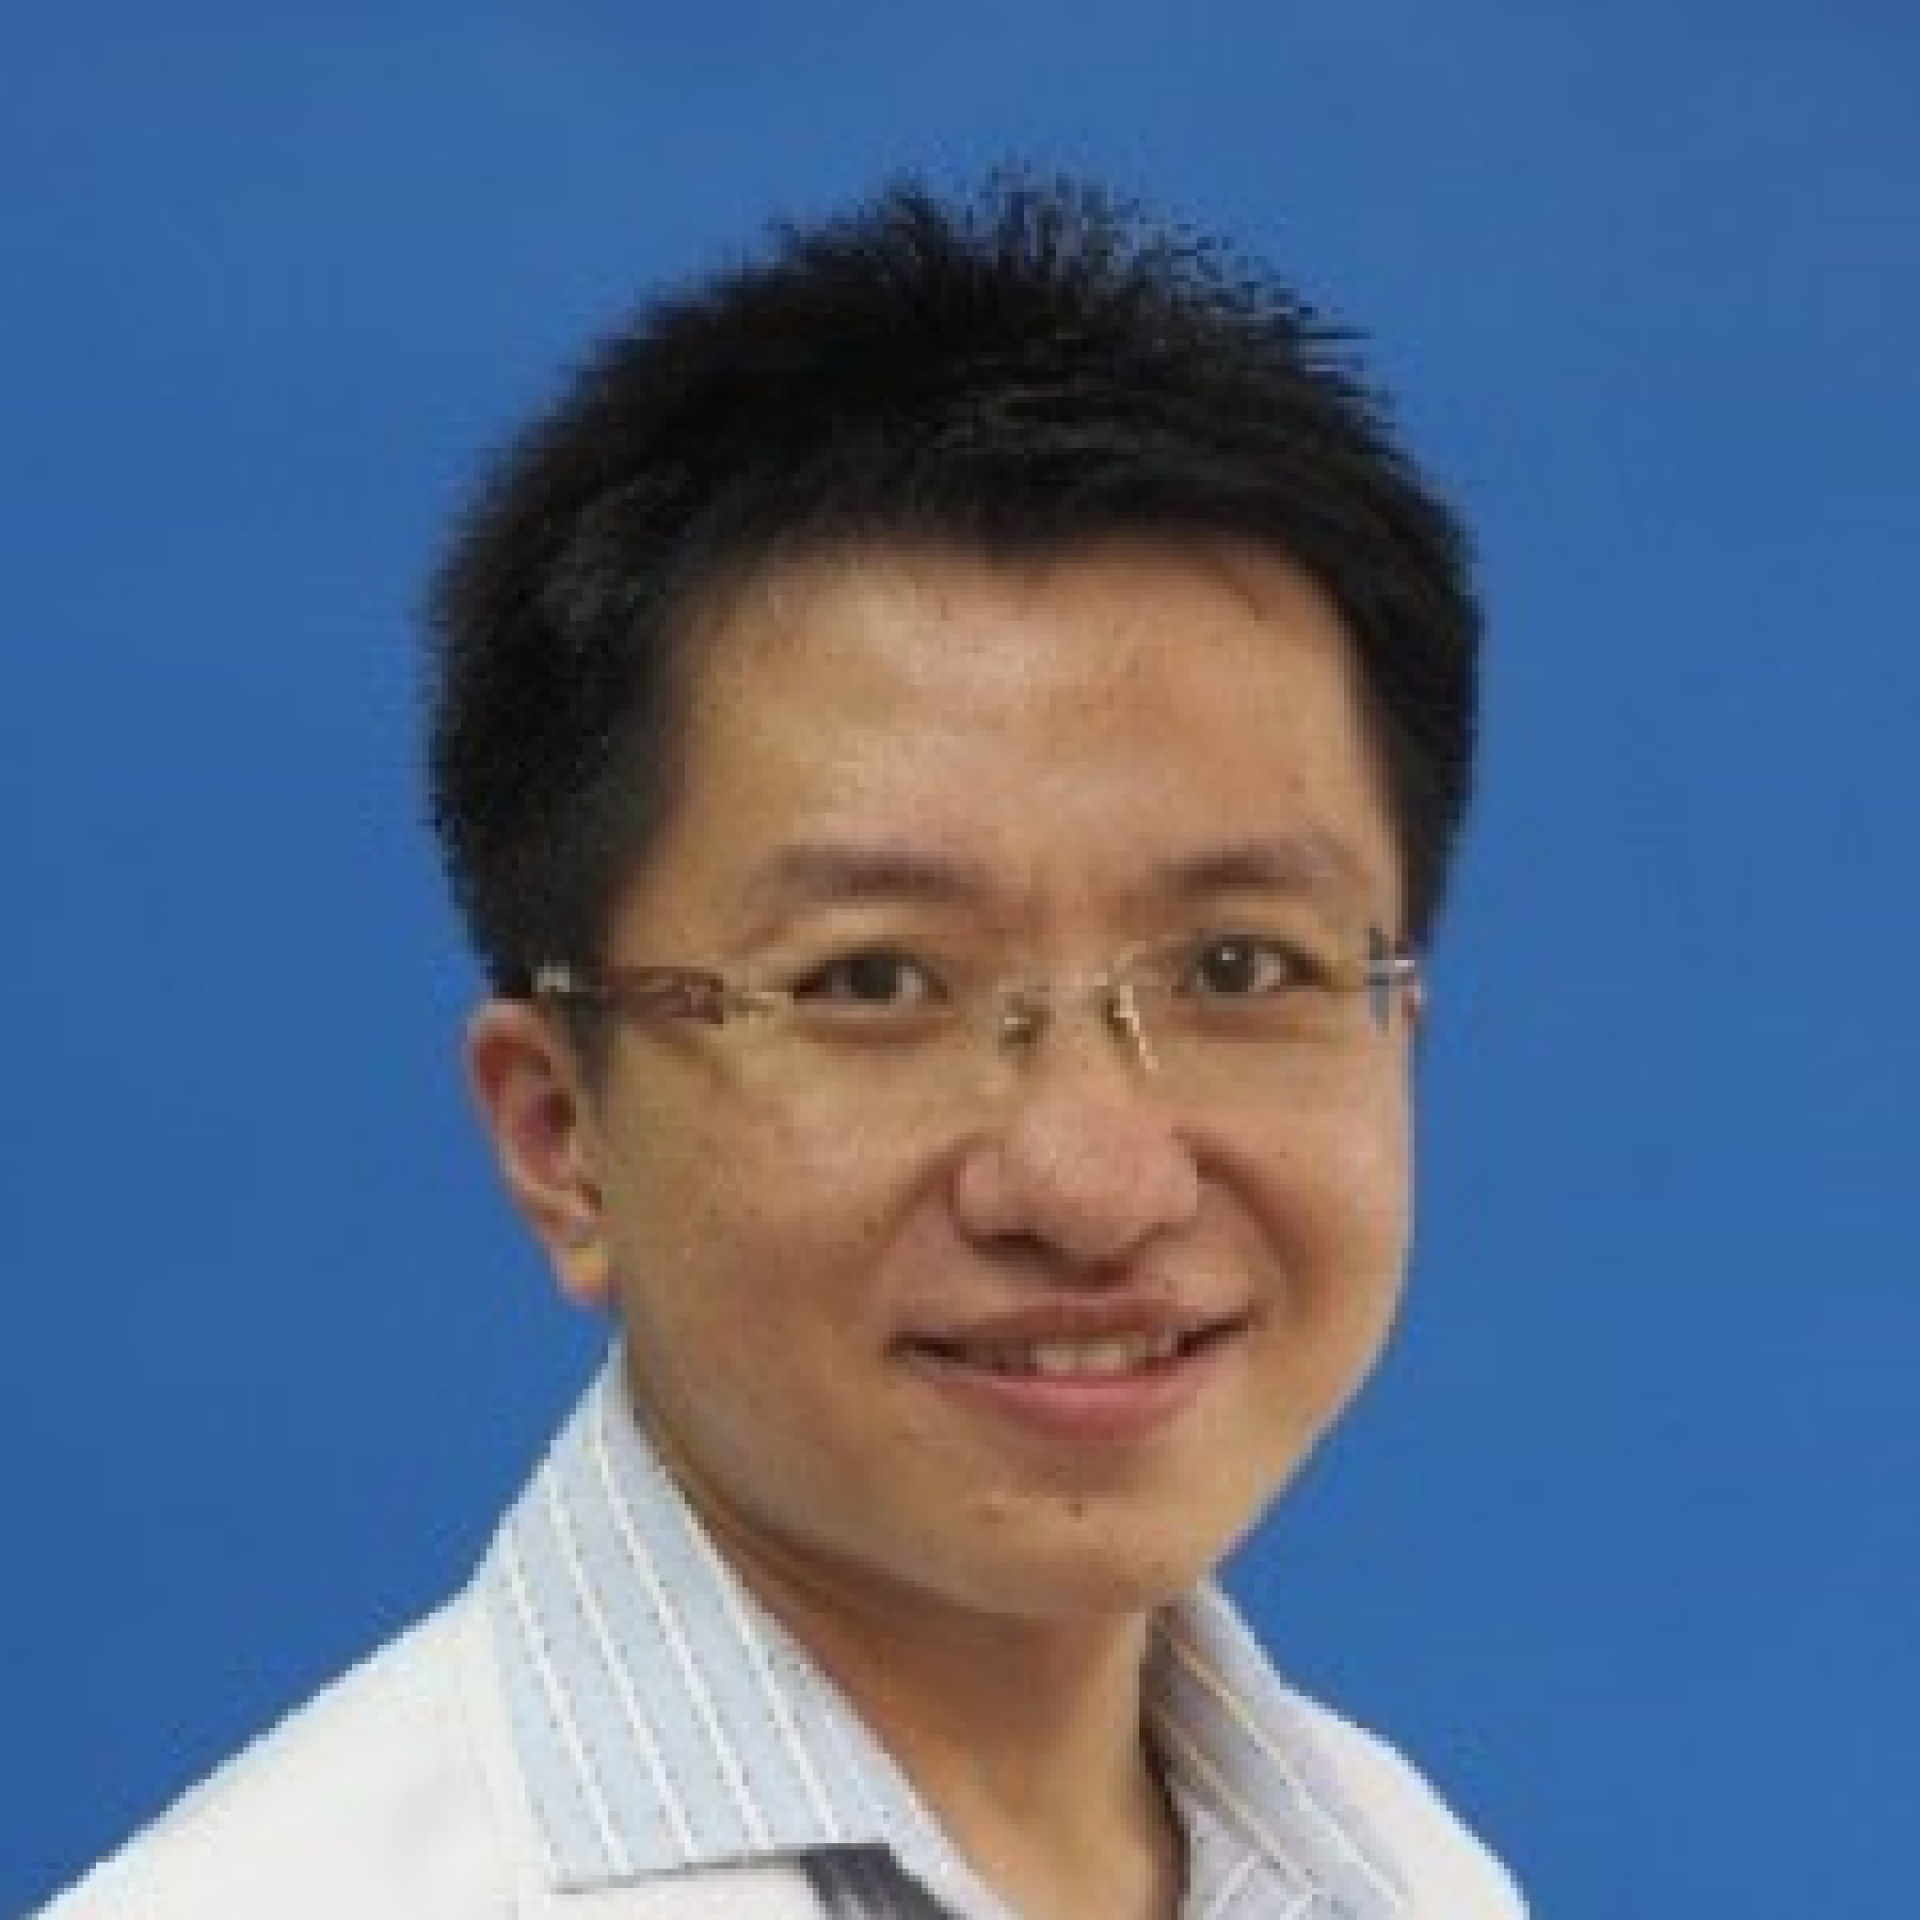 Mr. Goh Jin Kun